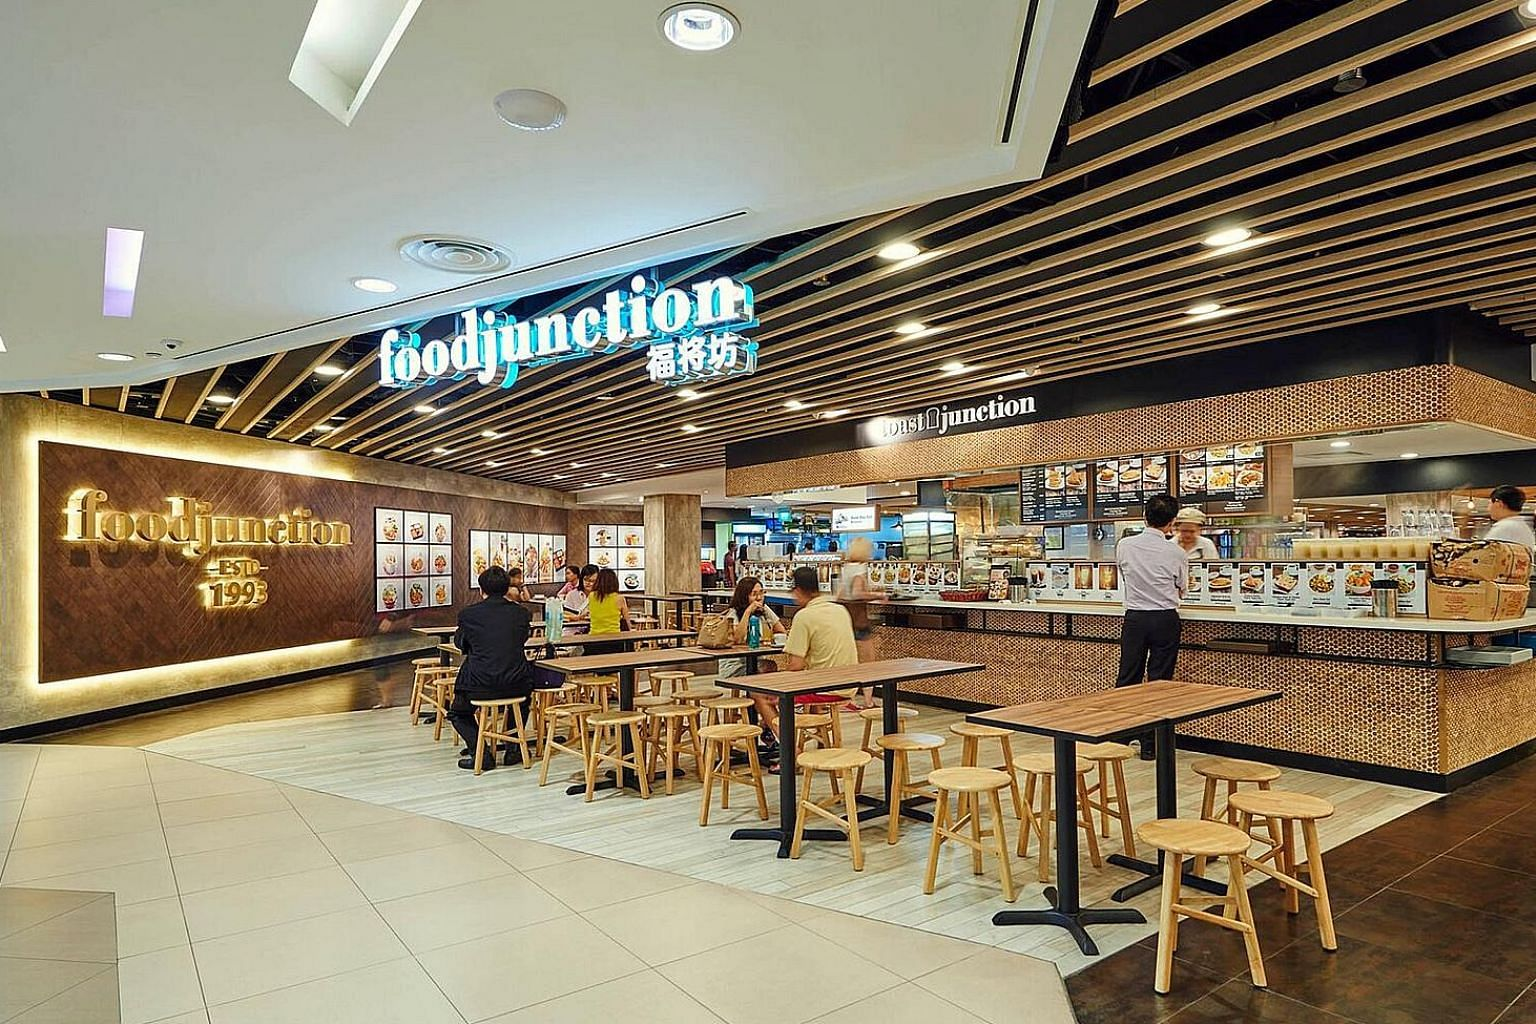 Investors holding on to shares of delisted Auric Pacific, which owns food-court operator Food Junction, feel the firm is worth more than the buyout offer of $1.65 a share, as its business prospects appear to be brightening.